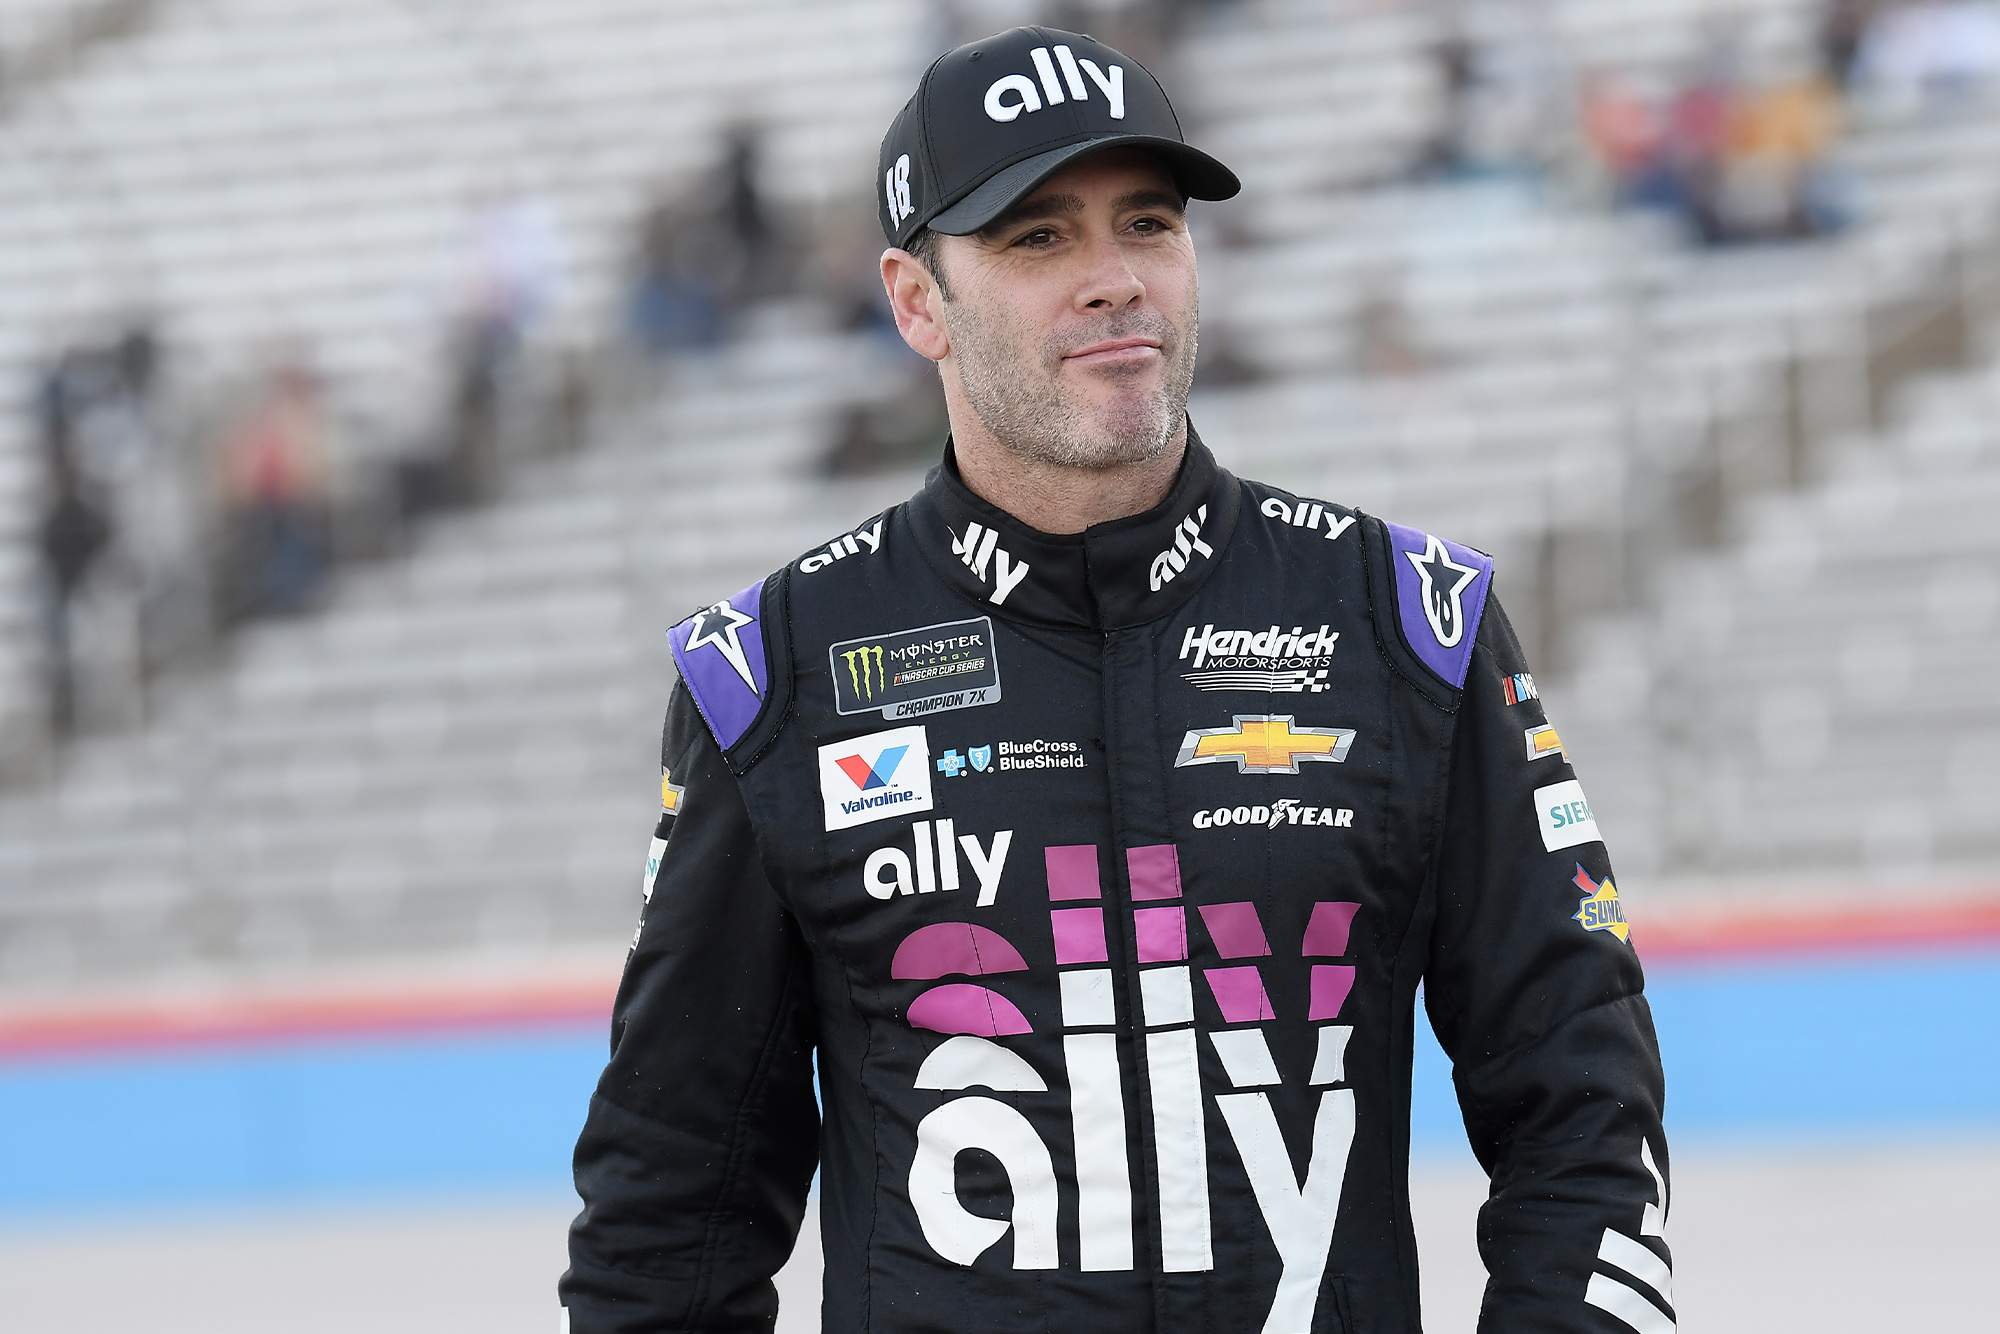 Jimmie Johnson during the 2019 season